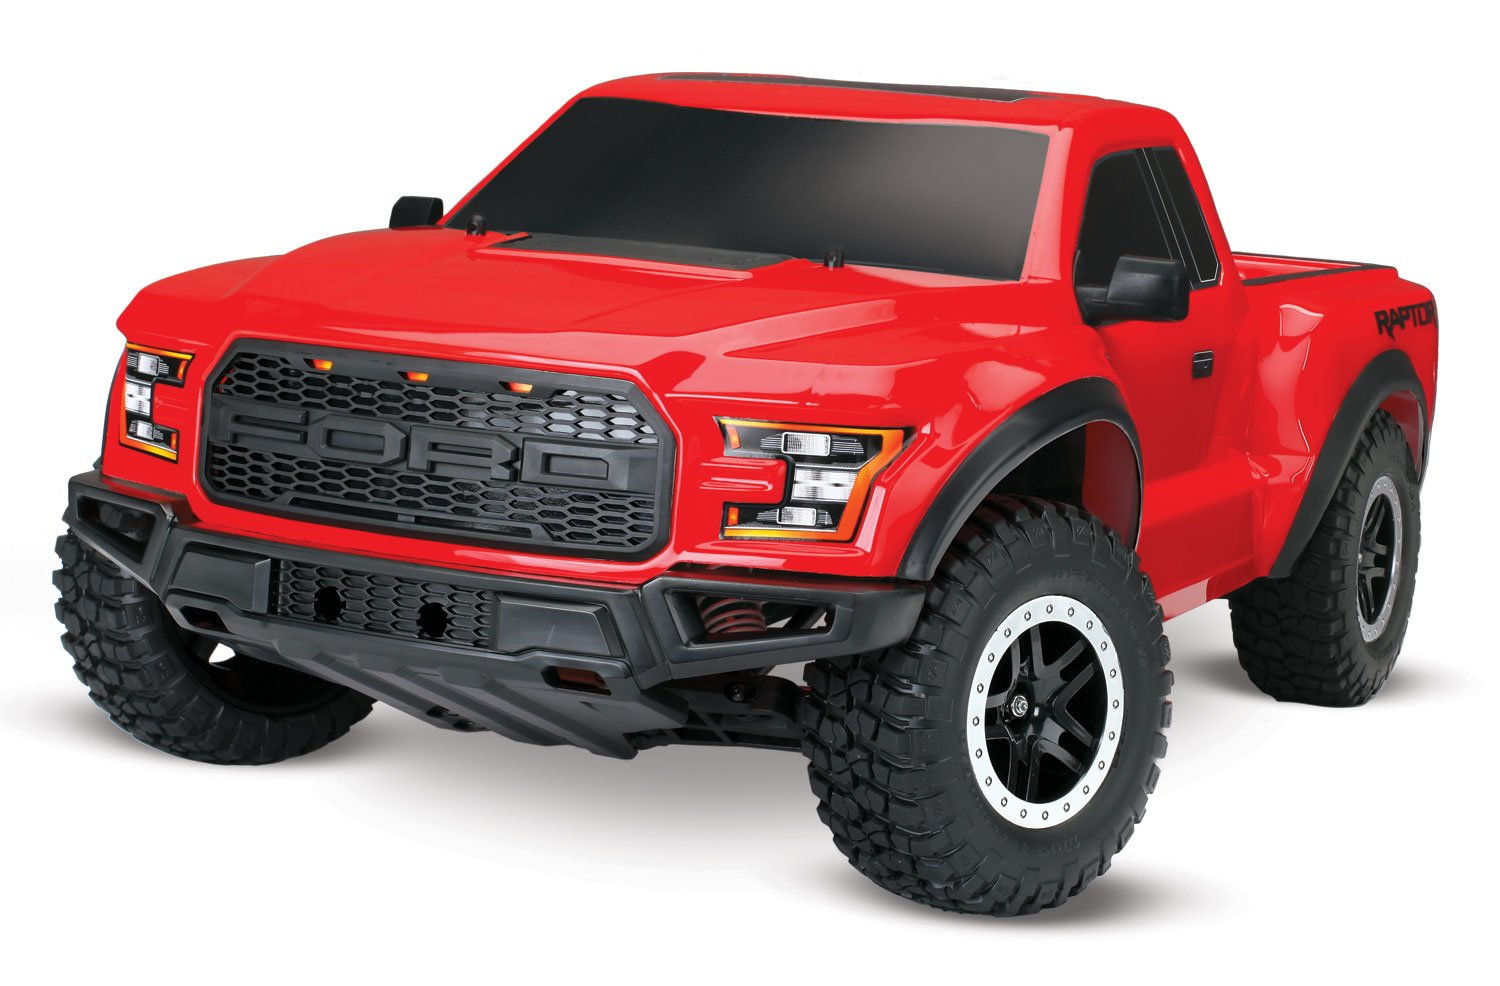 Traxxas 58094-1 2WD Ford Raptor with TQ 2.4Ghz Radio System (1/10 Scale), Red